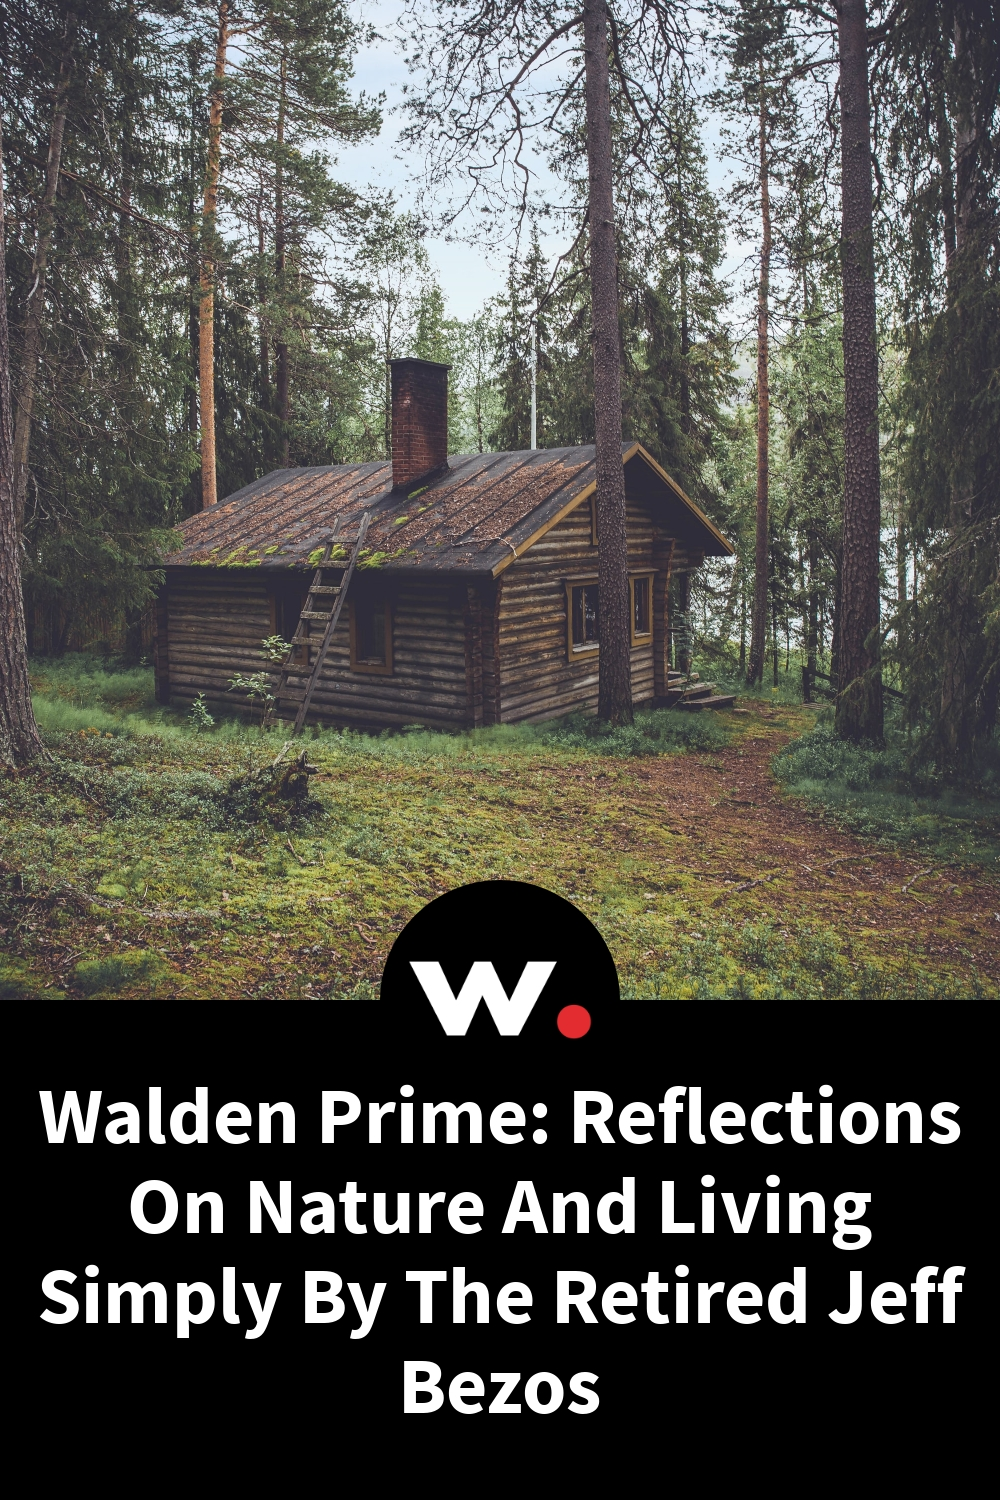 Walden Prime: Reflections On Nature And Living Simply By The Retired Jeff Bezos